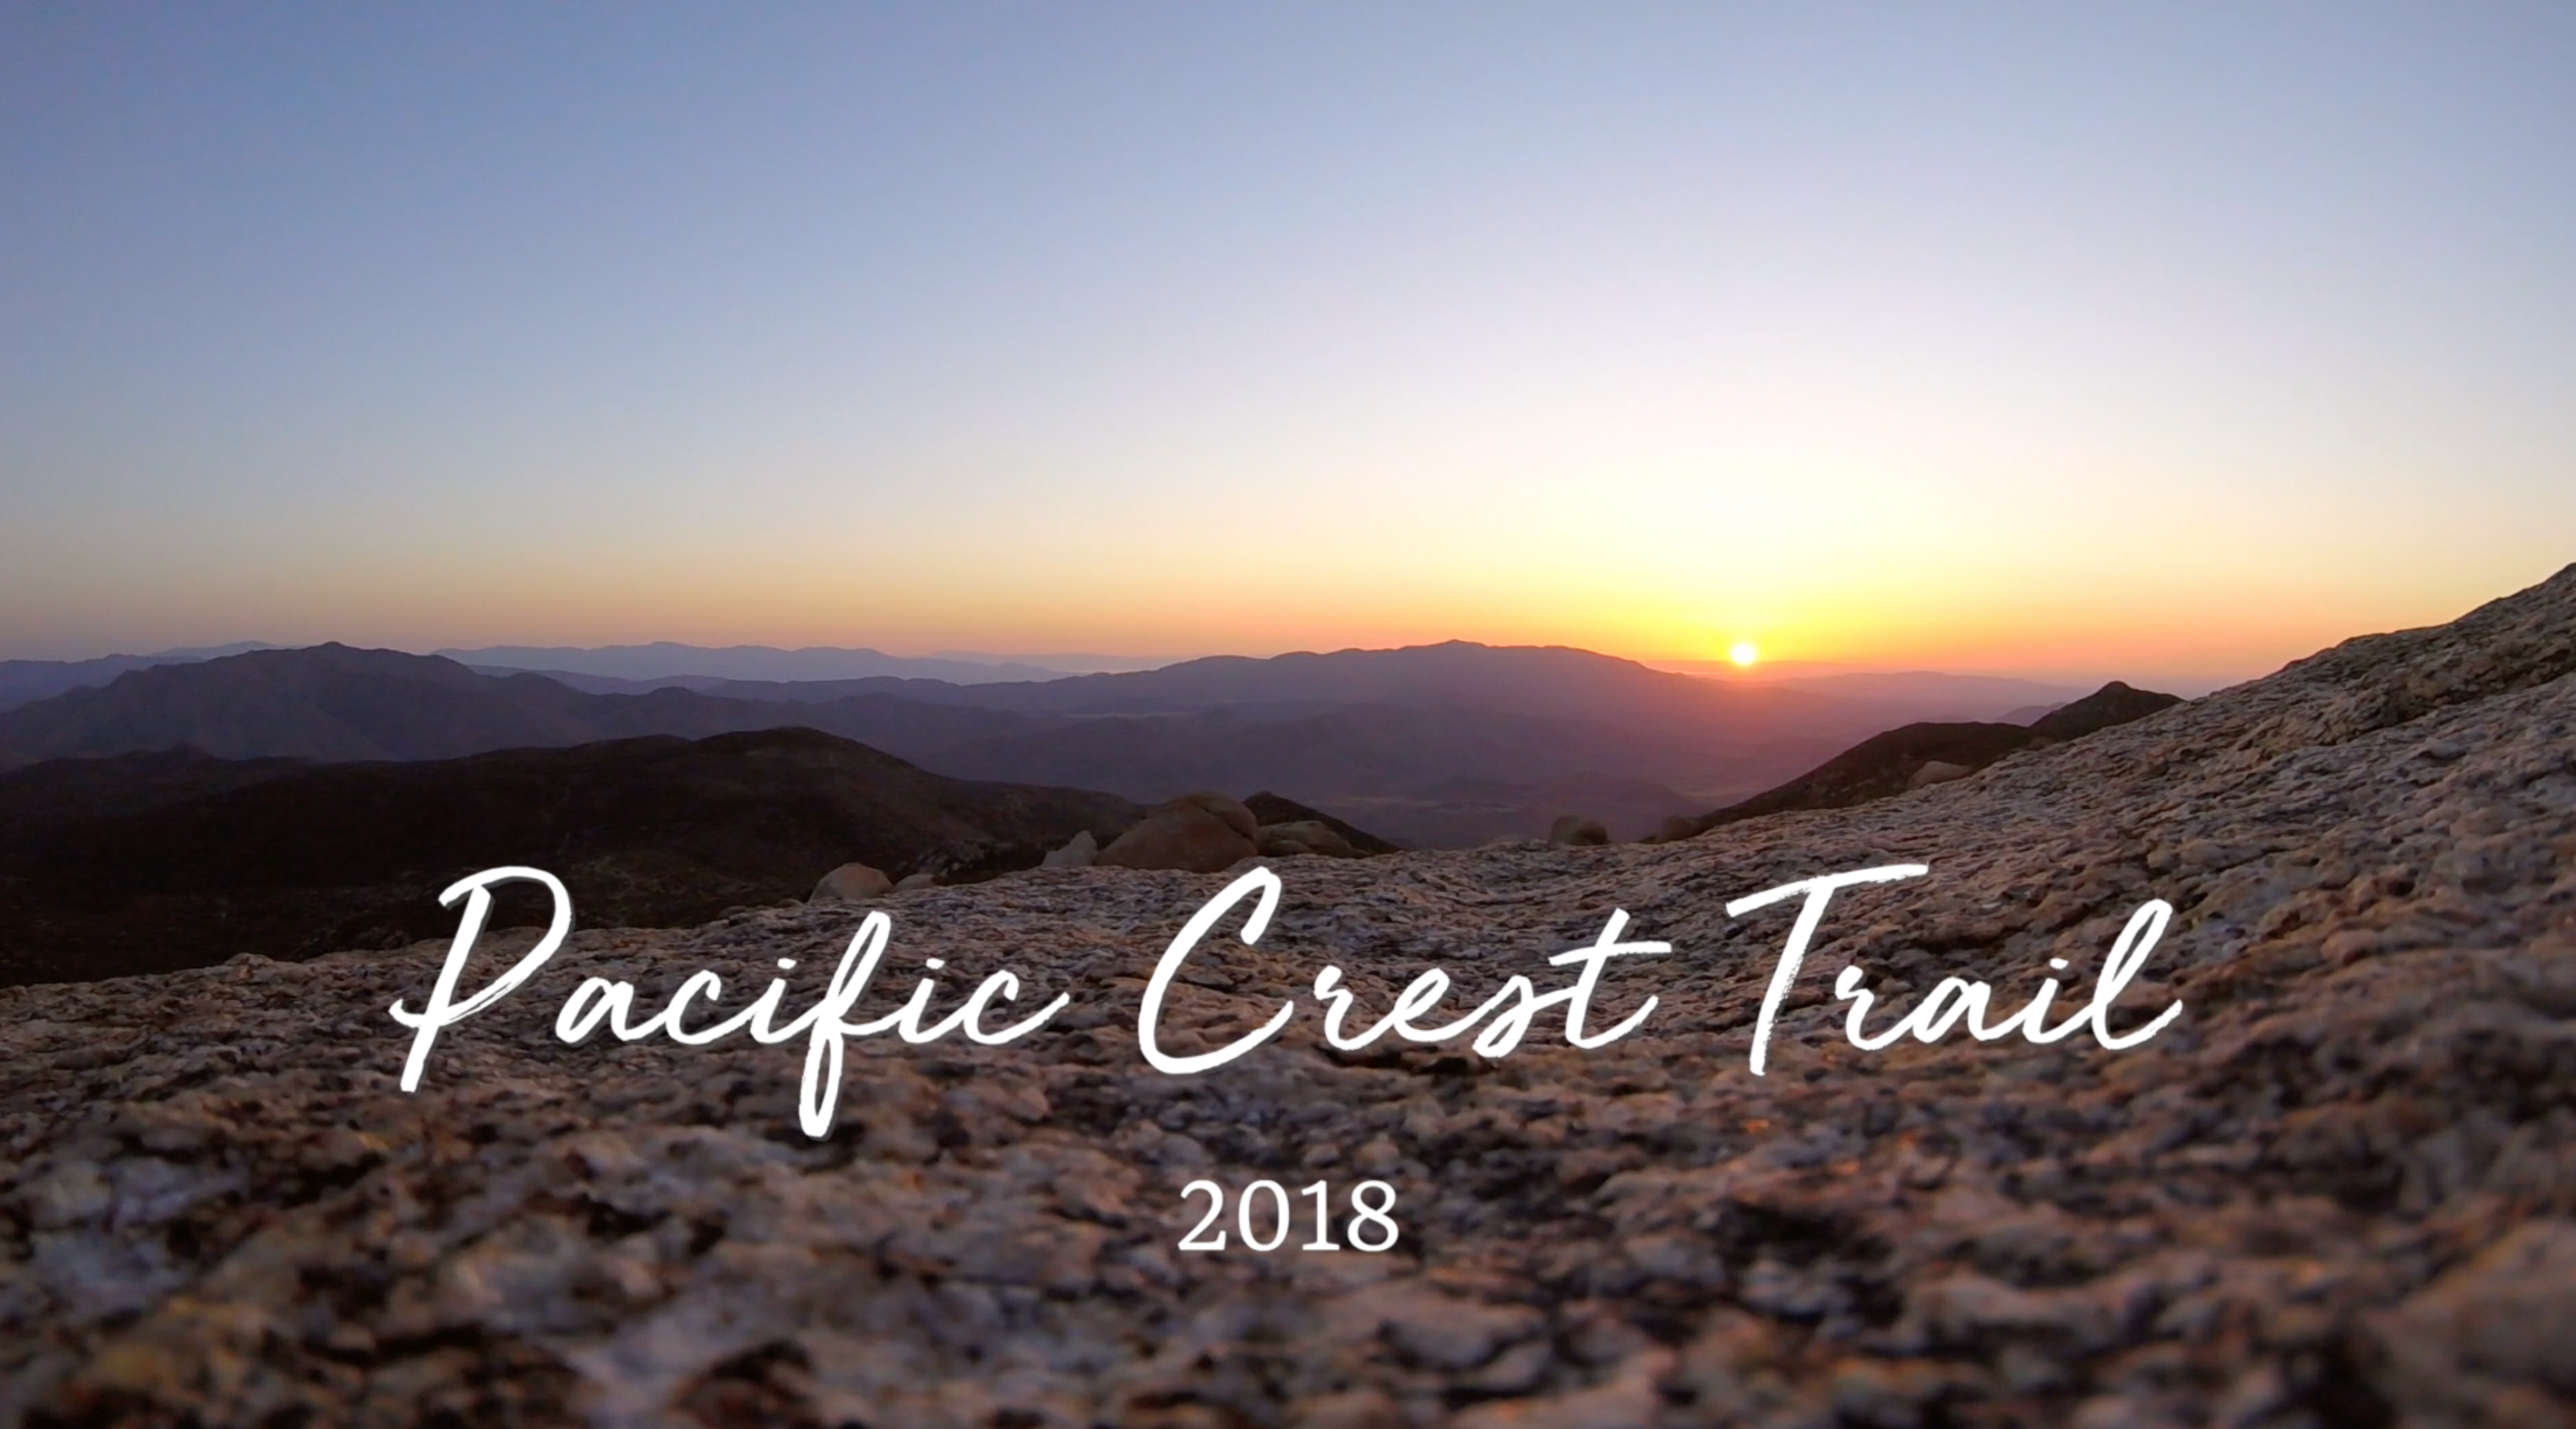 Pacific Crest Trail Hike in 20 Minutes